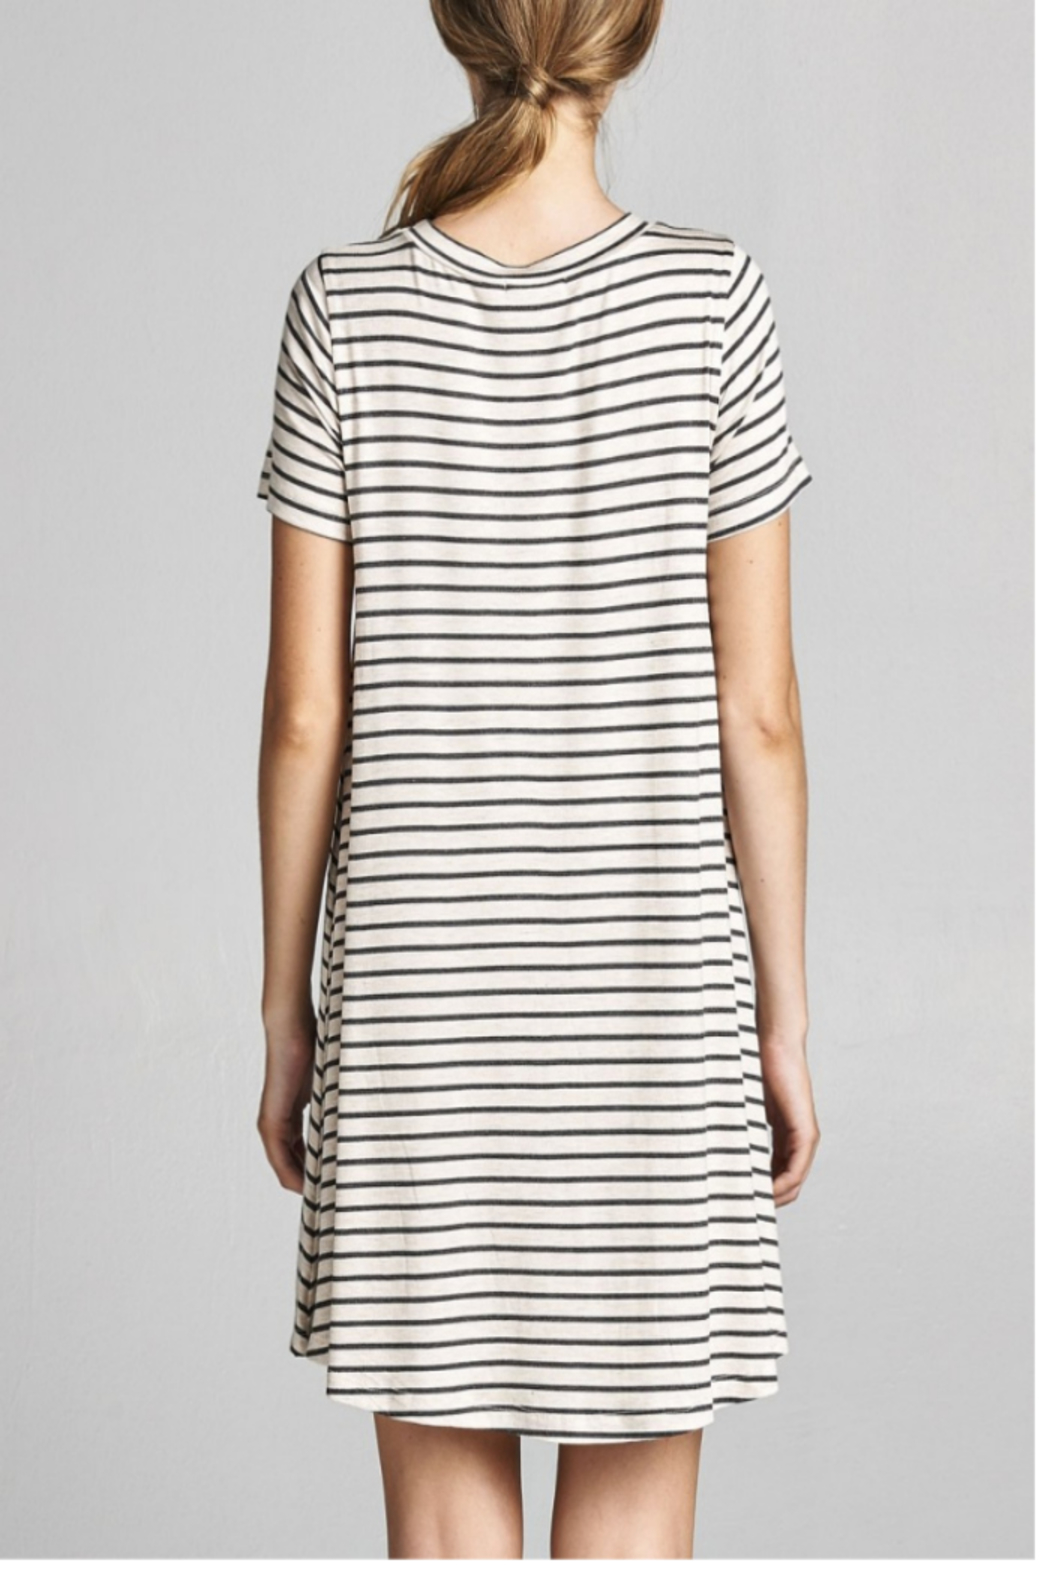 Cotton Bleu Stripped Everyday T-Dress - Front Full Image